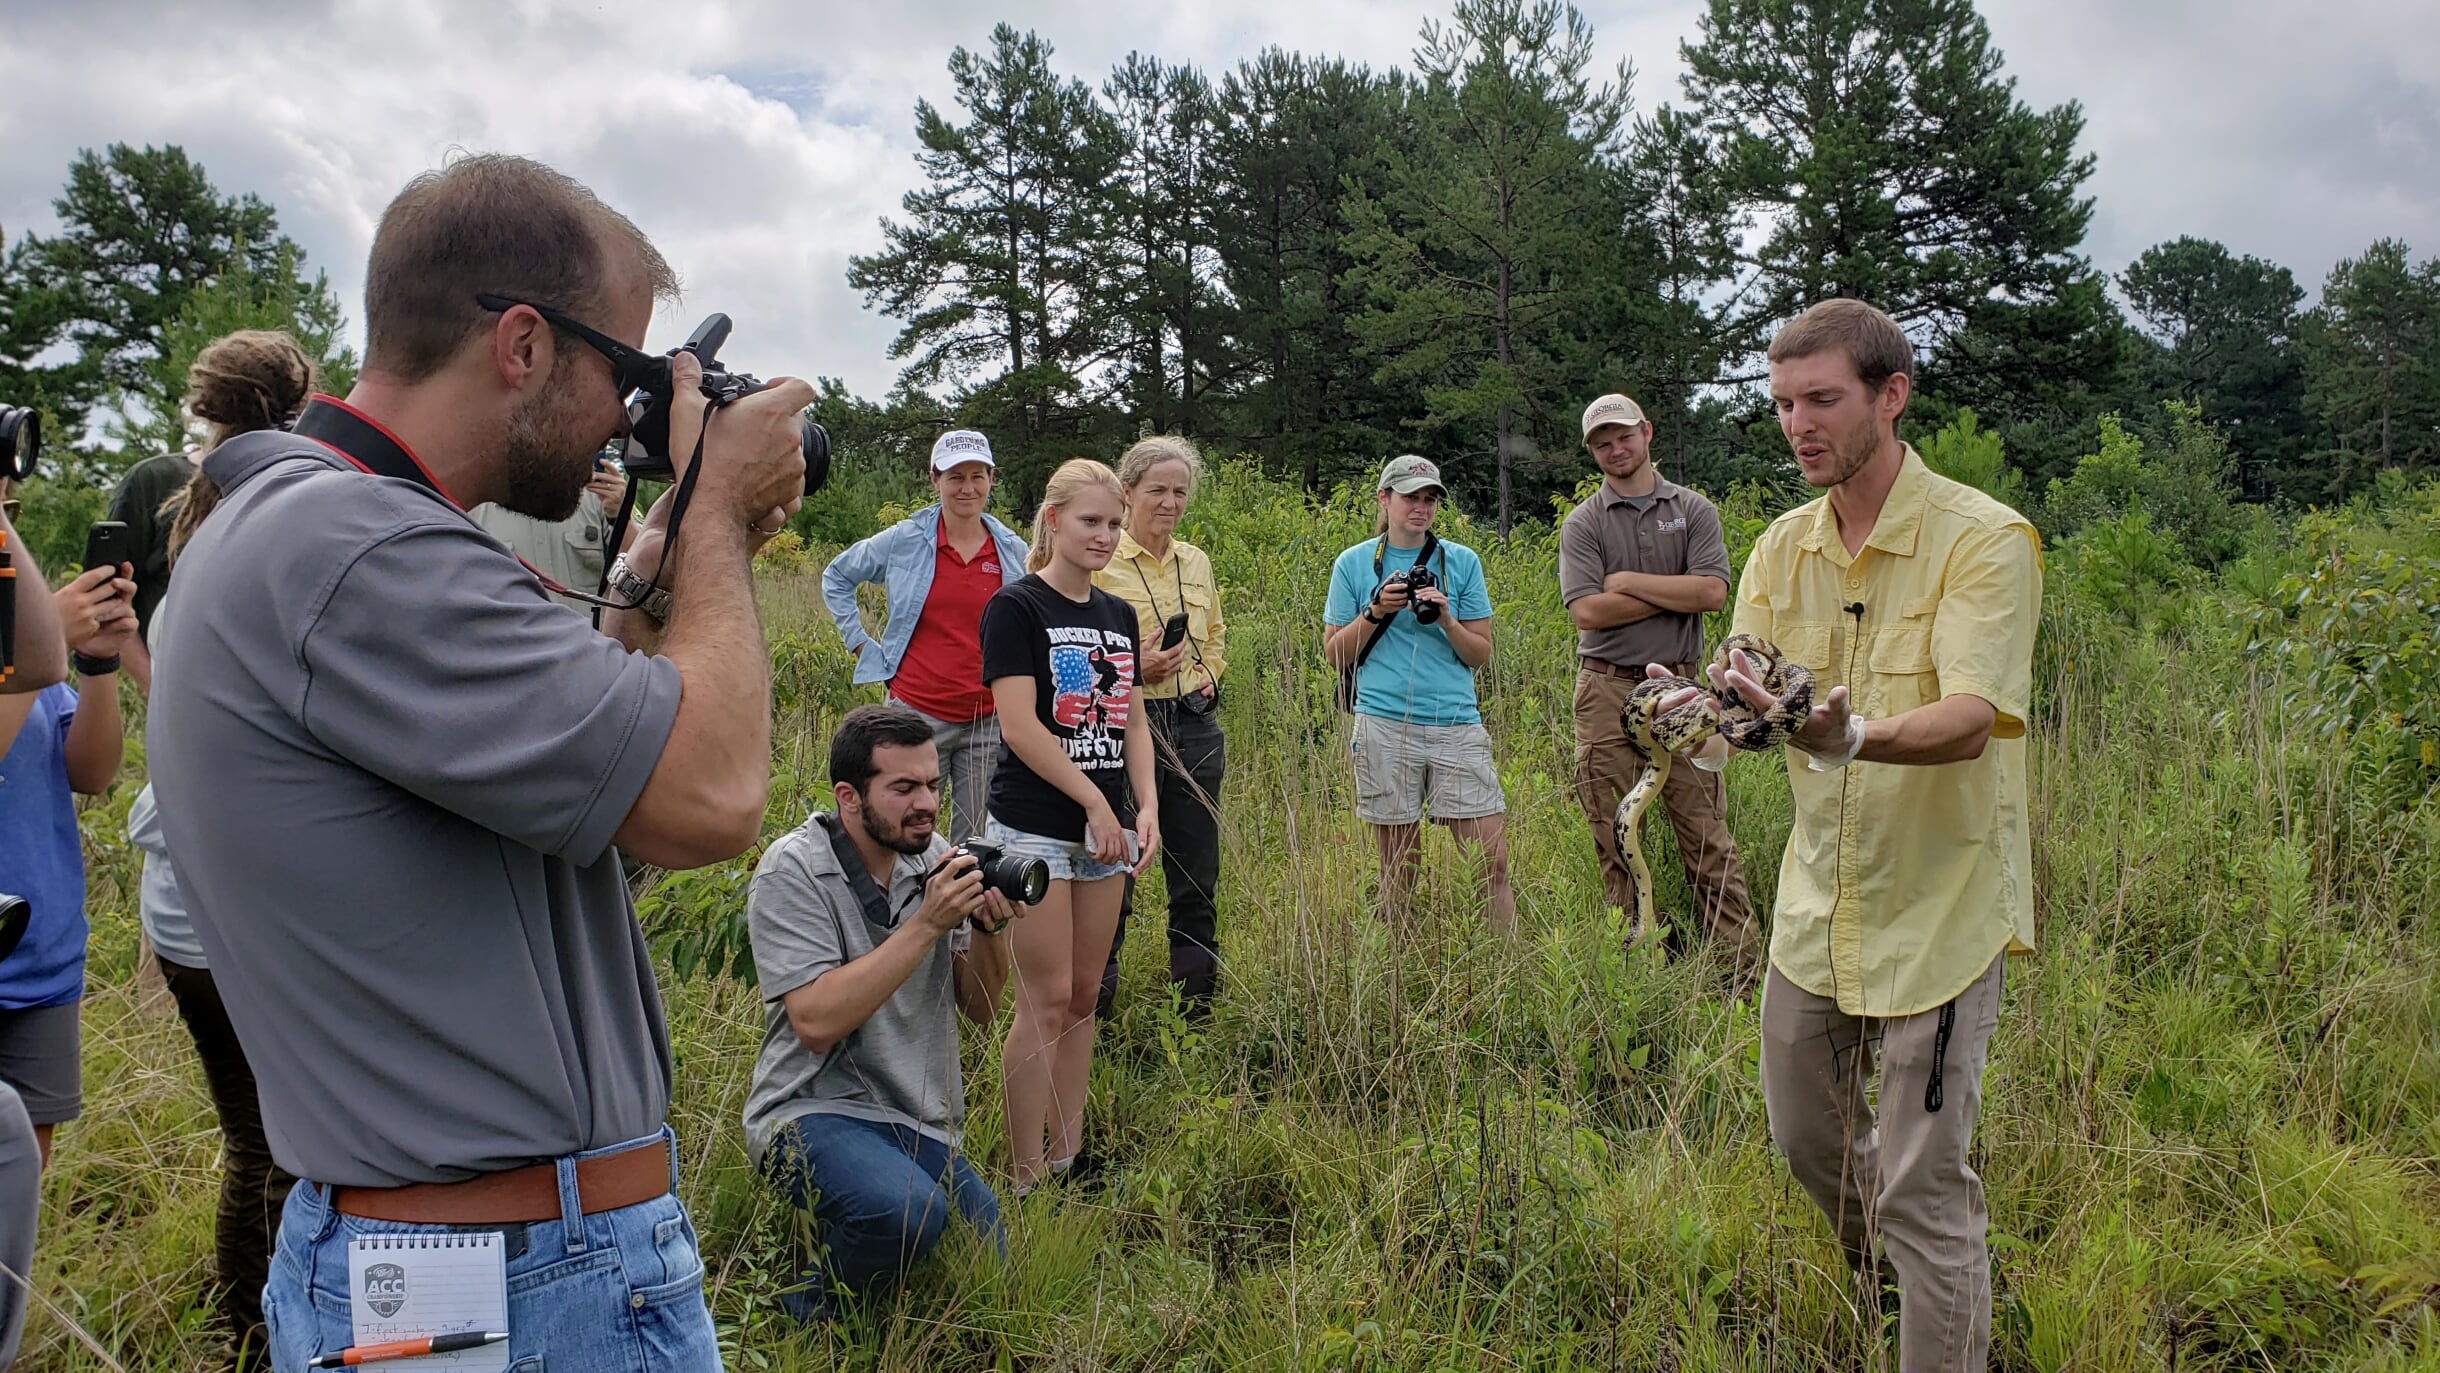 This snake release was a career highlight in 2019 for Ceska in red. Clemson University PhD Candidate, Bryan Hudson and his technicians had been looking for this species of Pine Snake, Pituophis melanoleucus, S3, Georgia Threatened, in North Georgia for nine years. Finding this snake, named Russell, was credited to the habitat restoration for Smooth Coneflower, Echinacea laevigata, G2/S2, work led in Georgia by the US Forest Service and the GPCA. Photo credit: Patricia Ceska.